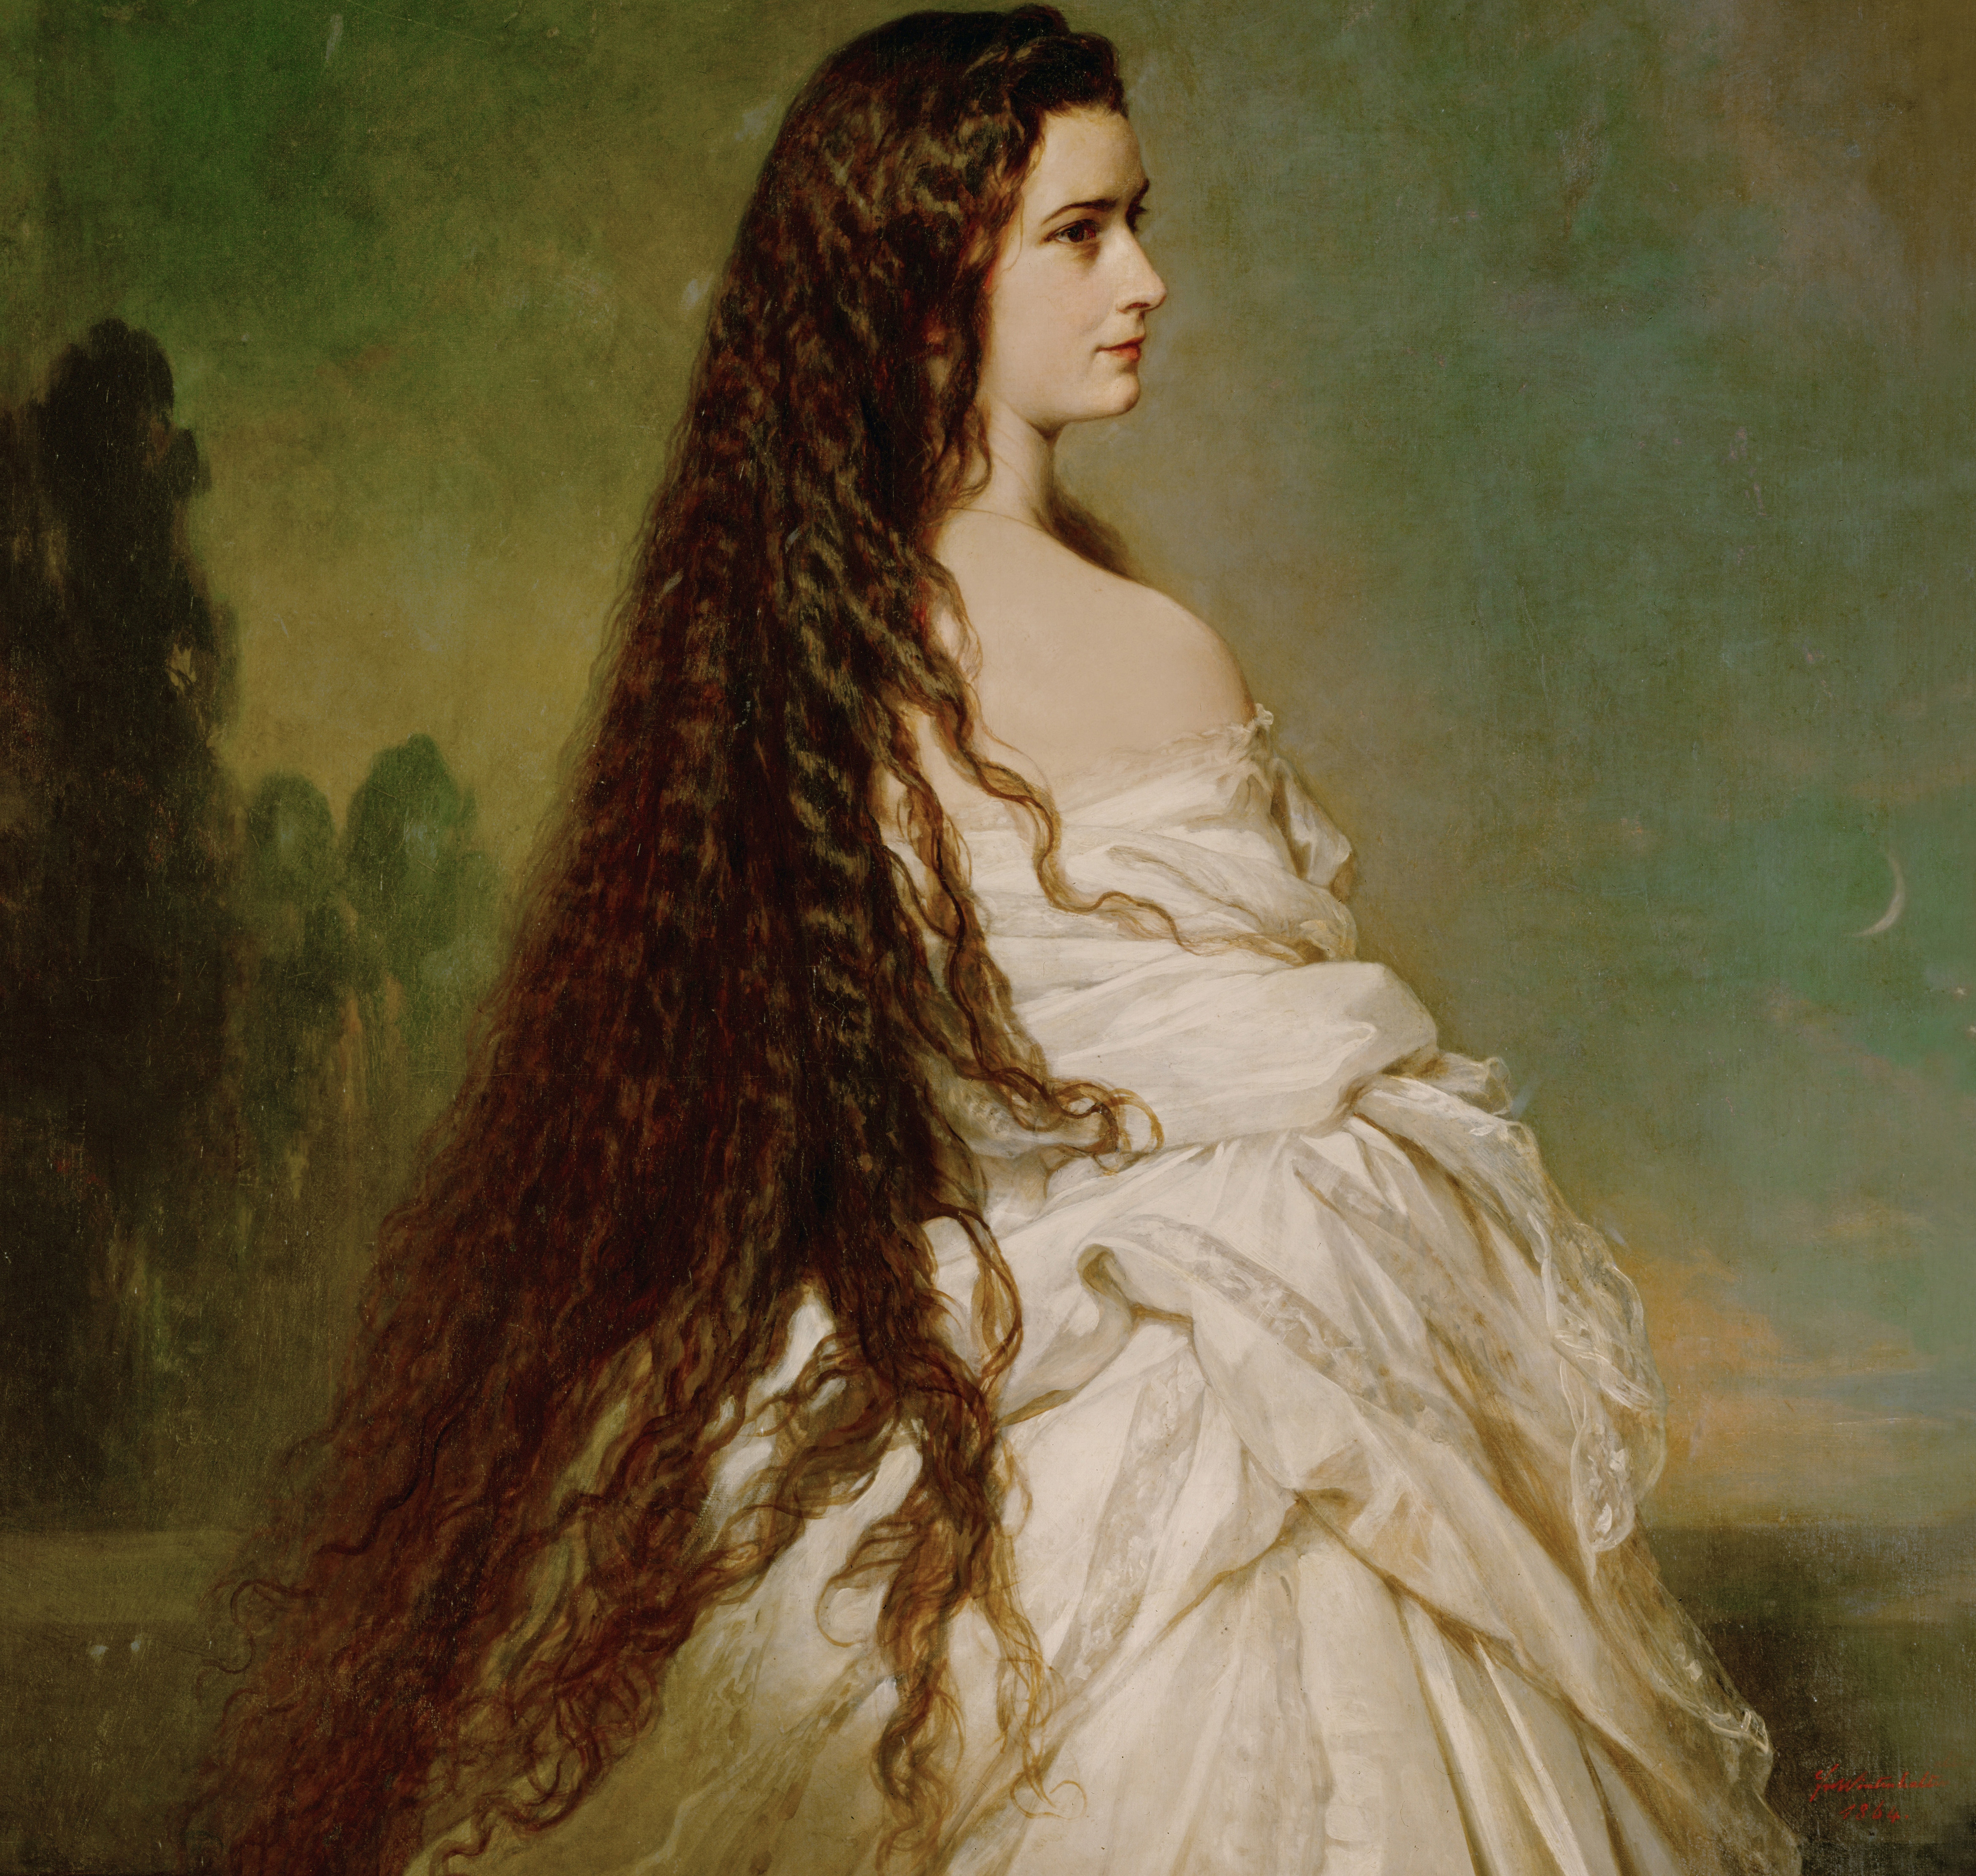 Empress Elisabeth of Austria, known for her long hair. (Credit: Imagno/Getty Images)